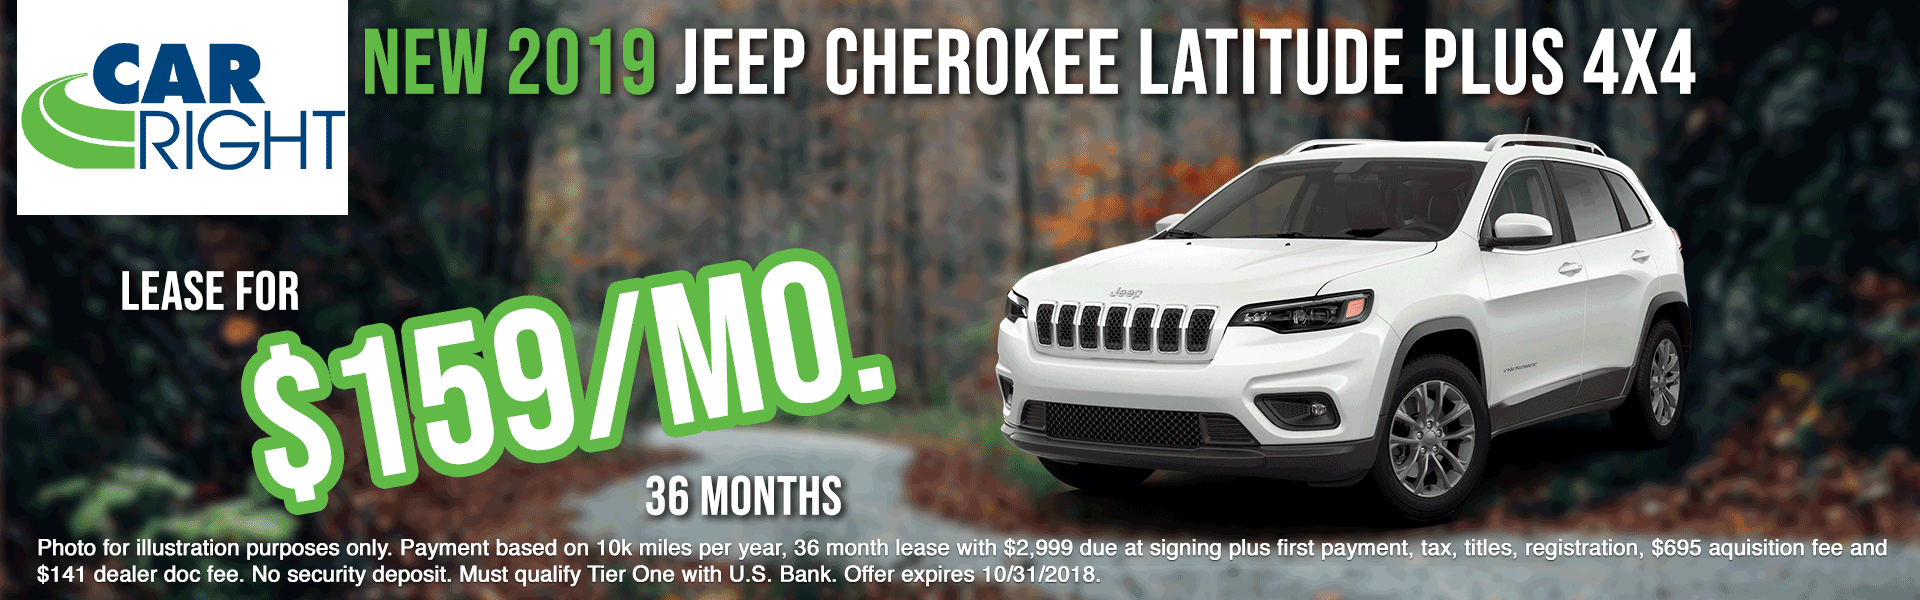 carright new vehicle specials carright specials chrysler specials dodge specials jeep specials ram specials lease specials moon township buy your car right the right way to buy a car K2923---2019-JEEP-CHEROKEE-LATITUDE-PLUS-4X4-OCT-BIG